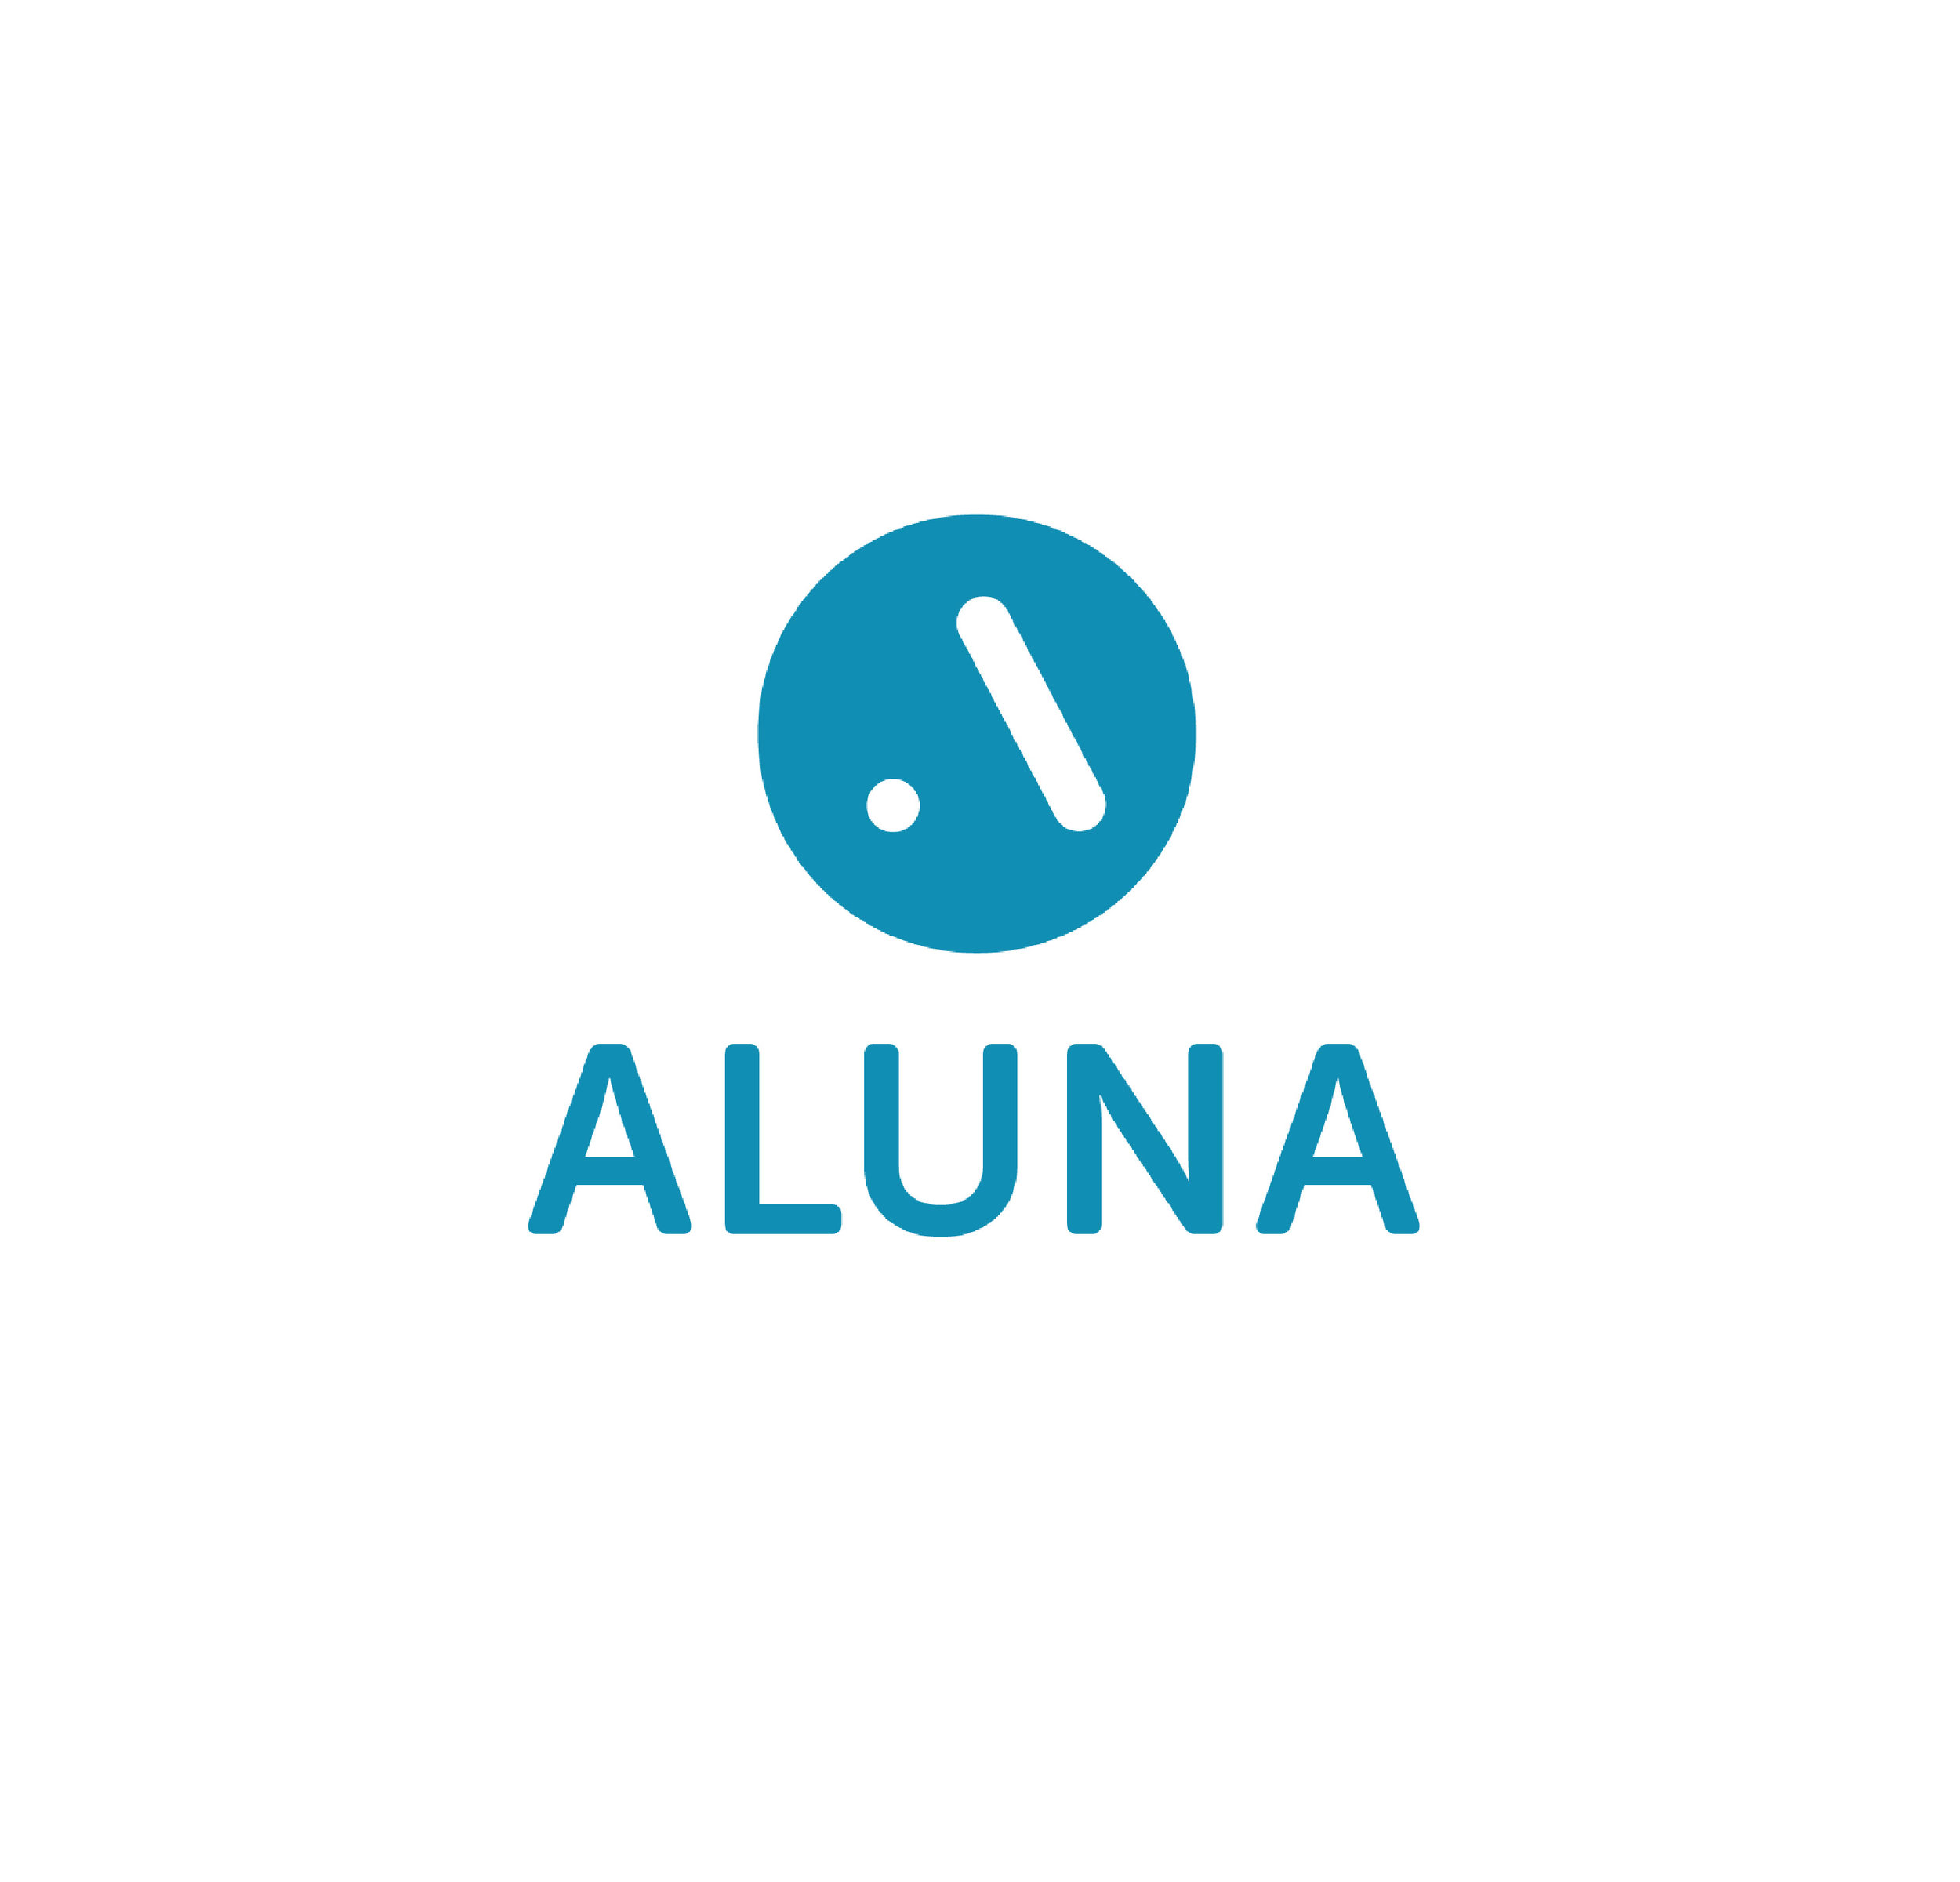 ALUNA - ALUNA is our digital governance buddy for Third Sector organisations.If you are a trustee or funder of Third Sector organisations, ALUNA is the tool for brighter, better boards.